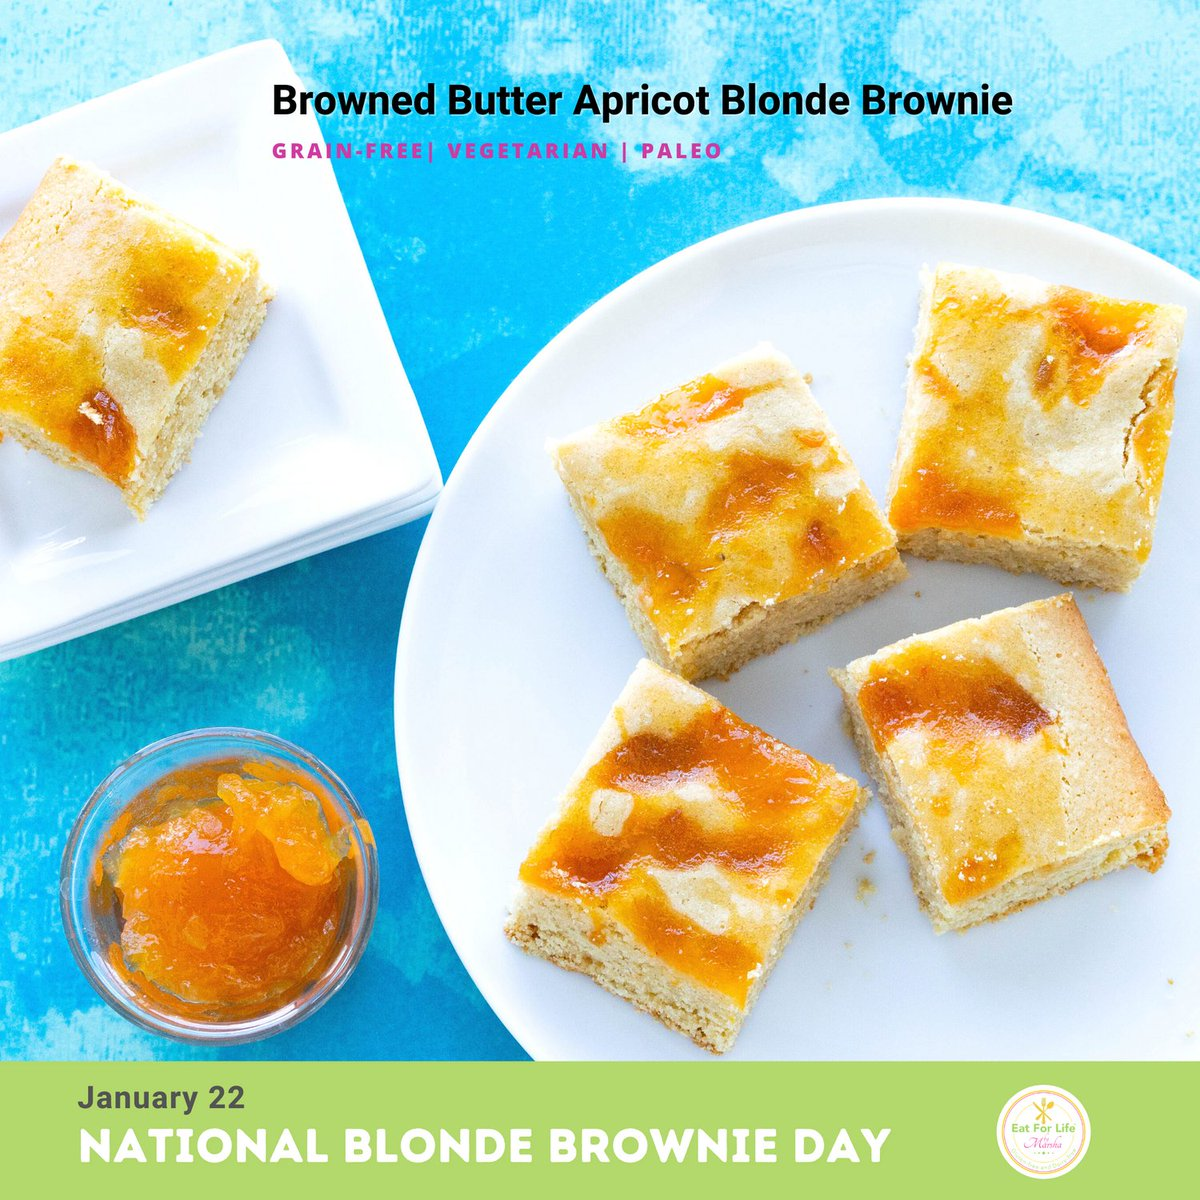 Happy National Blonde Brownie Day! 😊 #nutritious #delicious to help achieving our #snackalicious 2021 #health #goals. I got you! 🥰 Happy Friday! 😊   #nationalblondebrownieday #apricot #healthybaking #vegetarian #paleo #baking #canadianblogger #glutenfree #dairyfree